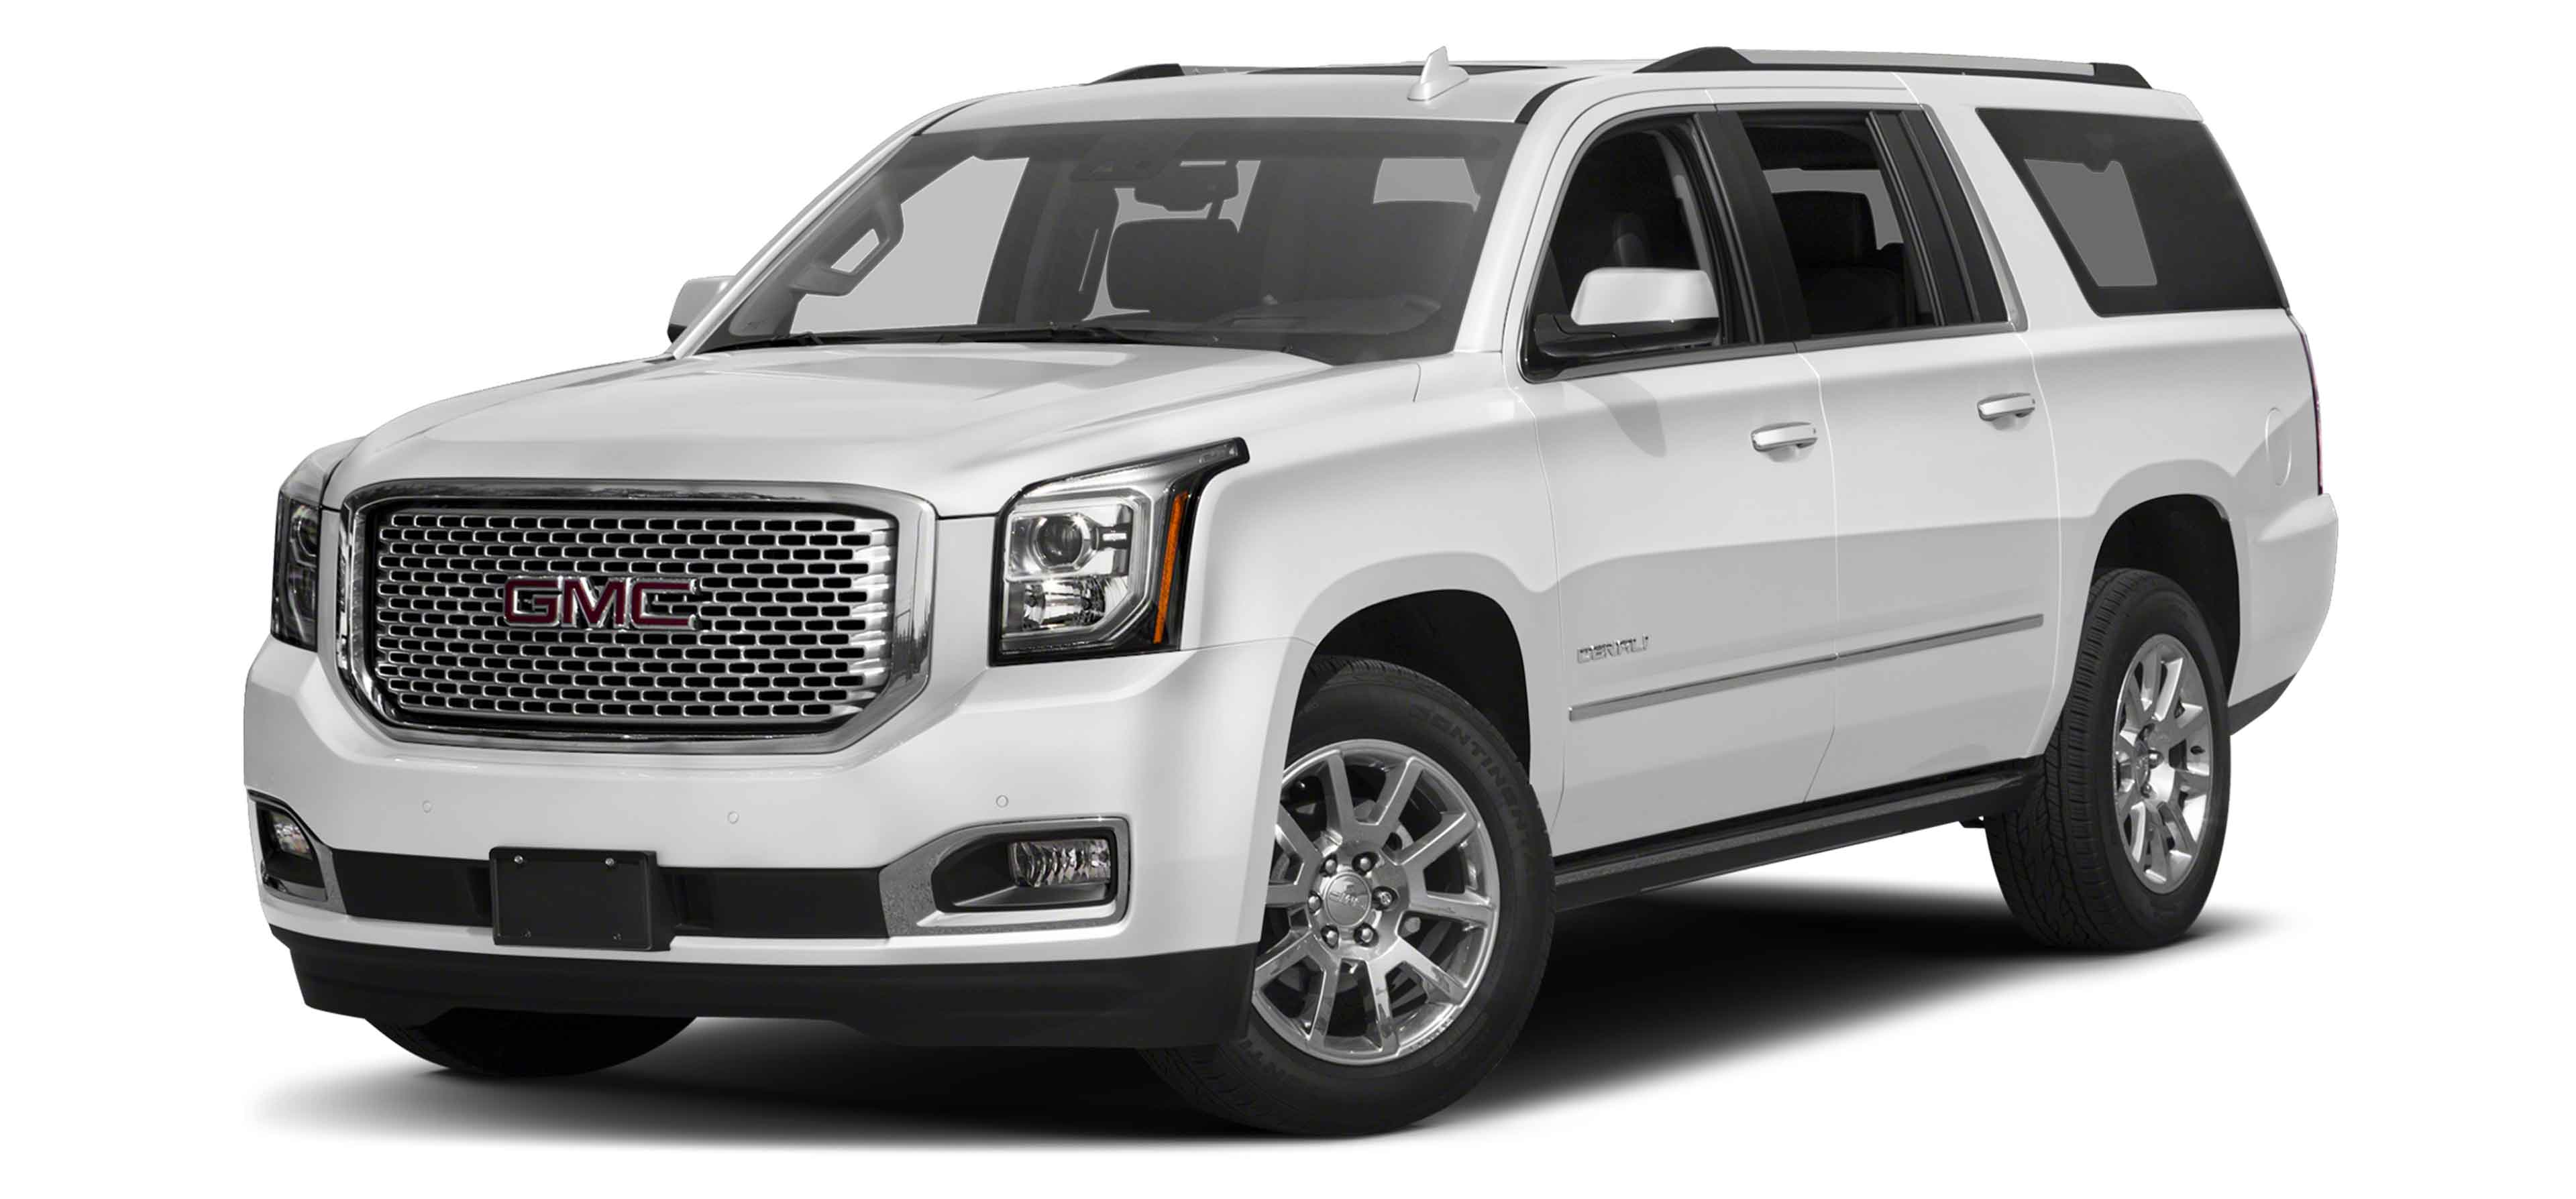 new and used gmc yukon xl for sale new cars car reviews 2016 2016 sexy girl and car photos. Black Bedroom Furniture Sets. Home Design Ideas